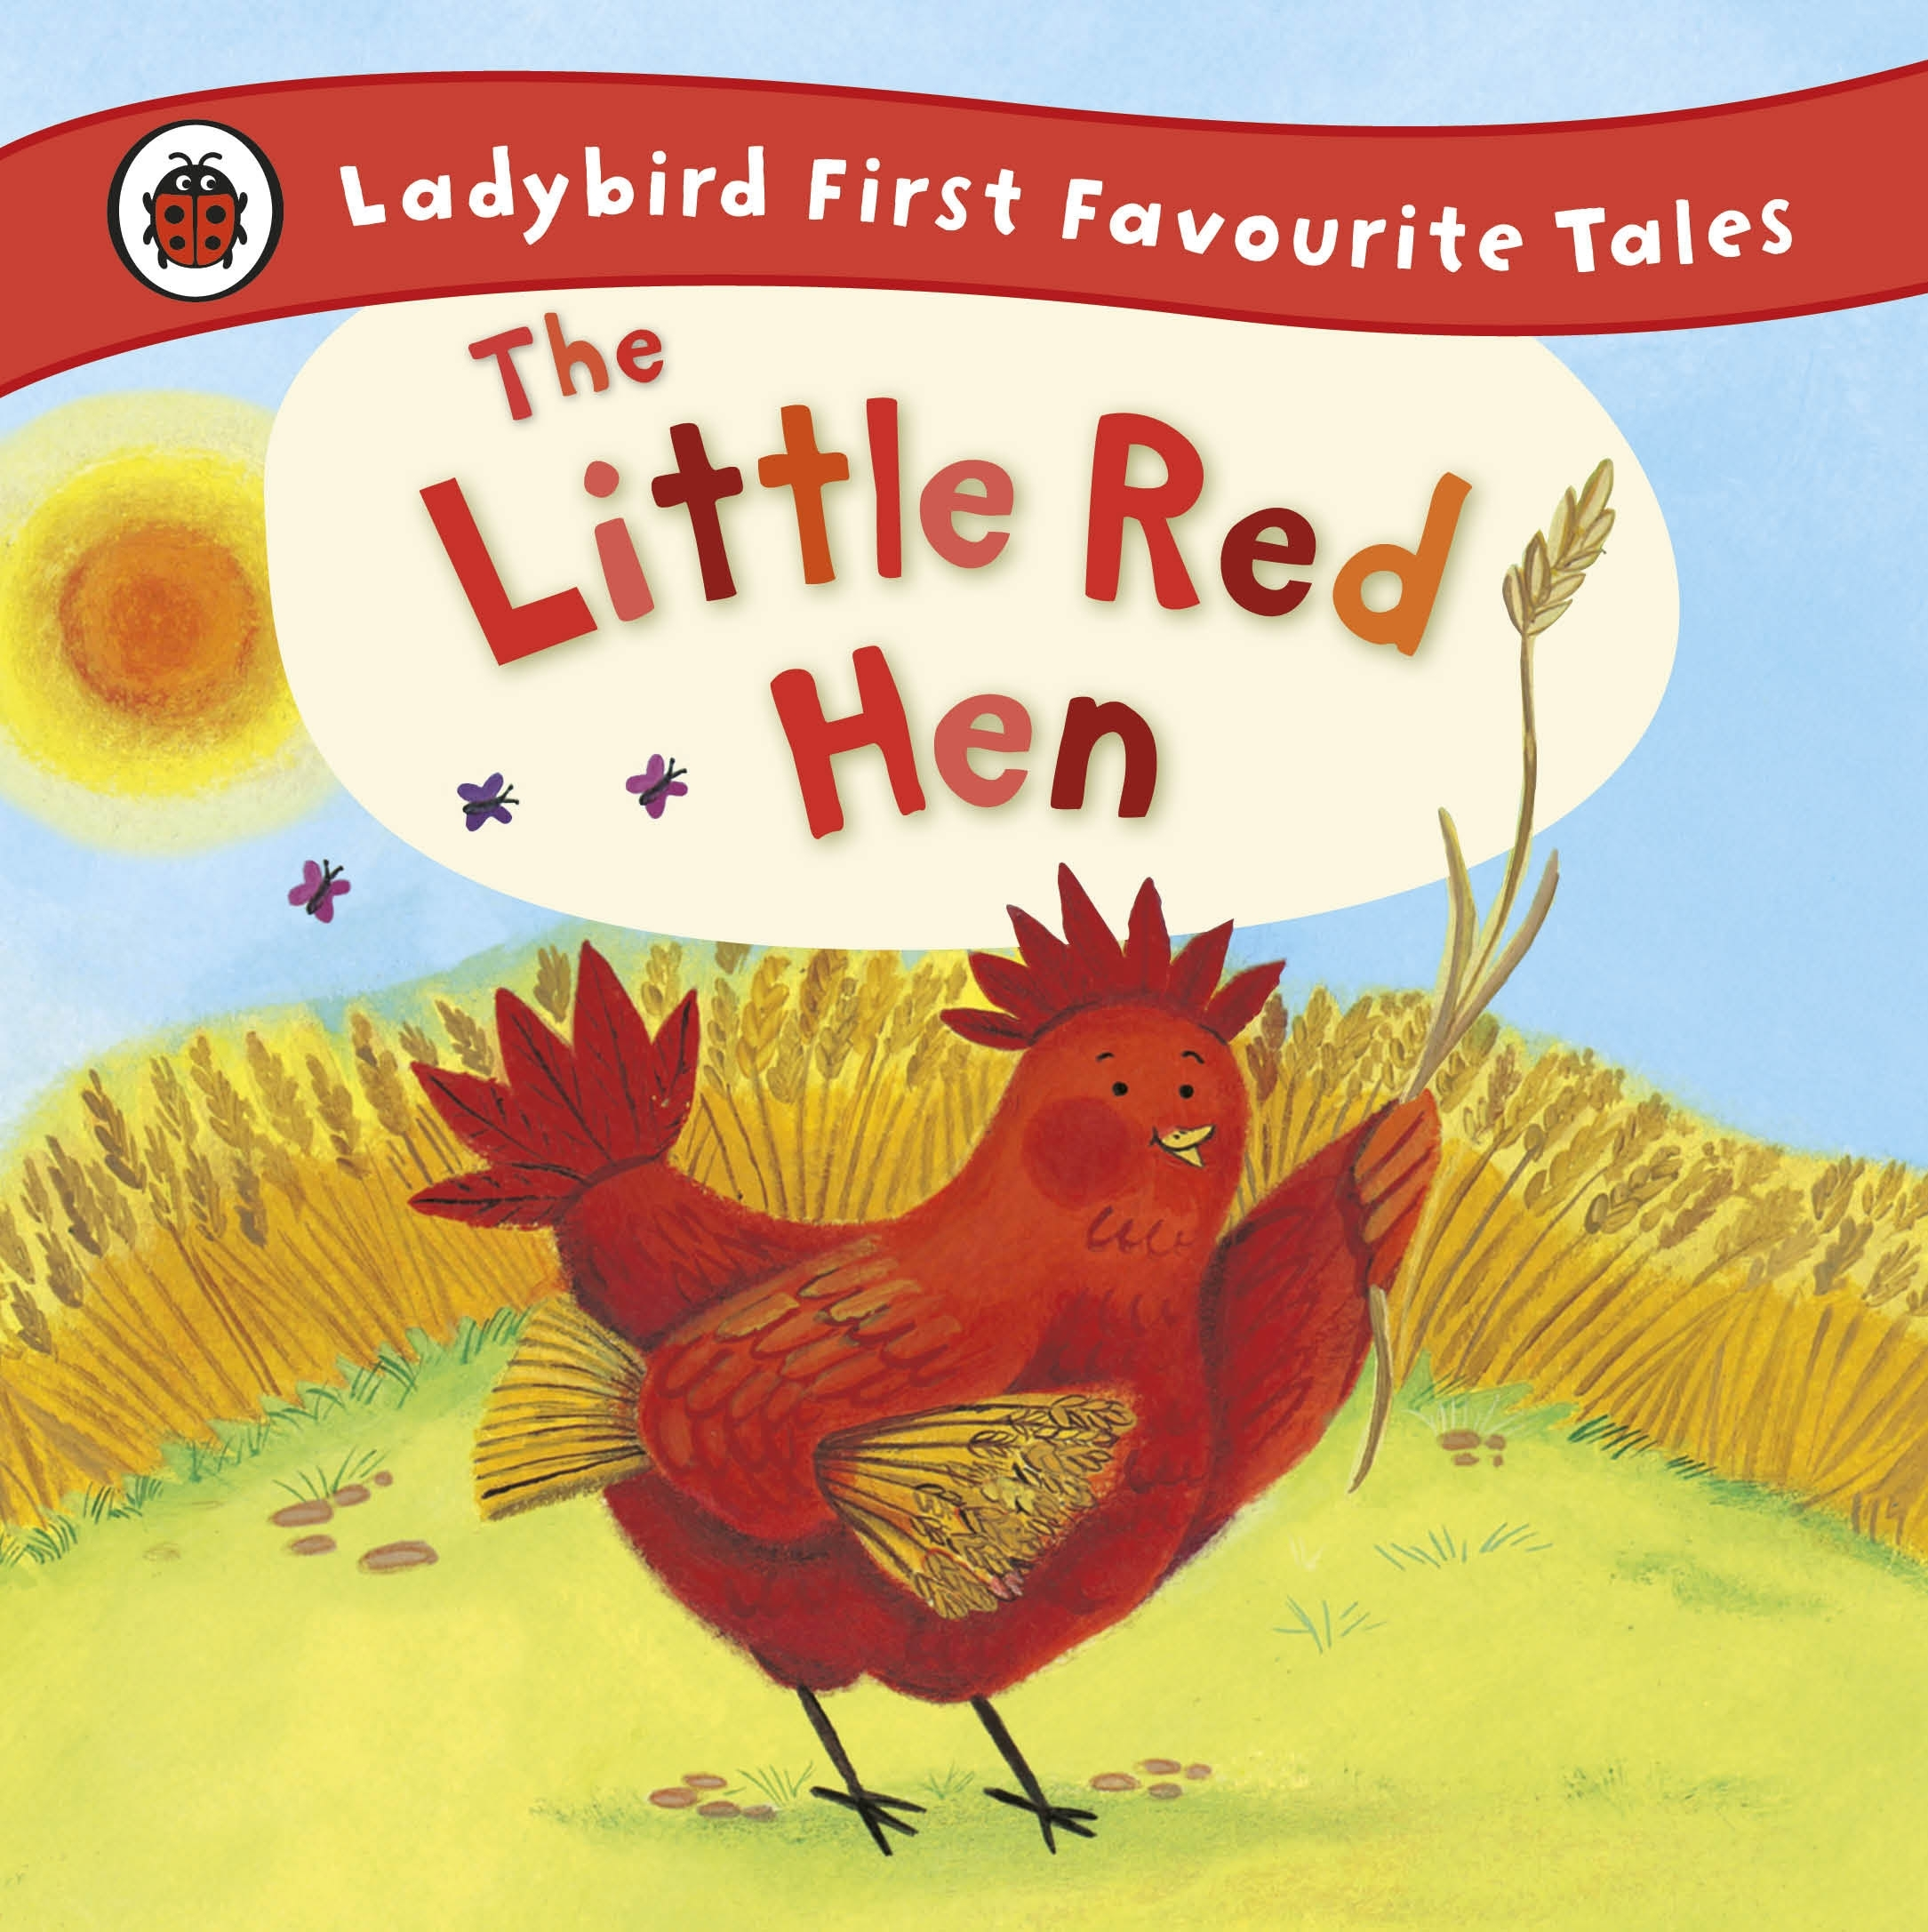 Ladybird First Favourite Tales The Little Red Hen By